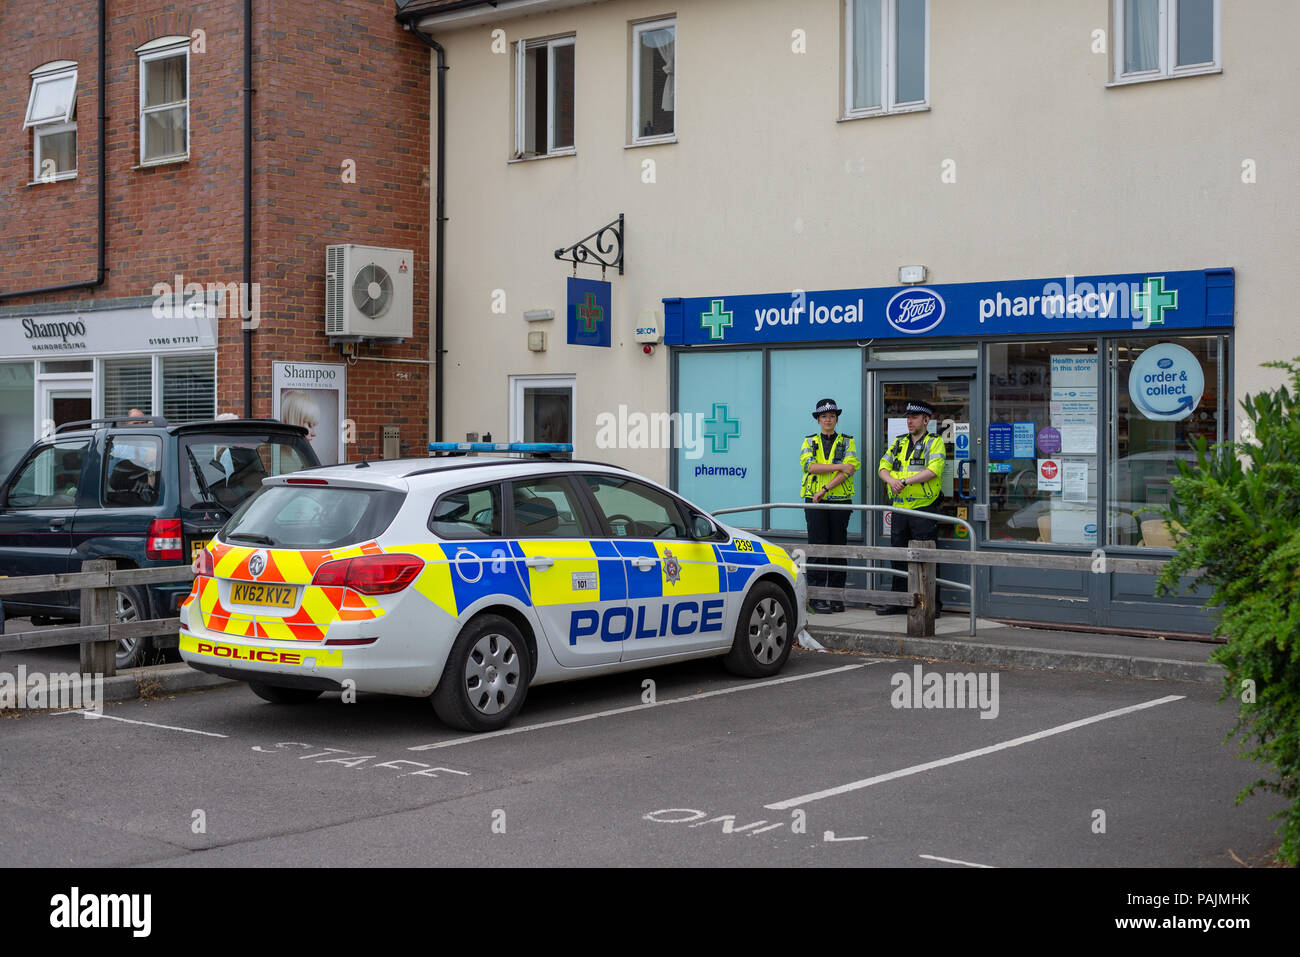 Police guard Boots the Chemist pharmacy during the Novichok poisoning which caused a major incident in the town at the beginning of July 2018 - Stock Image